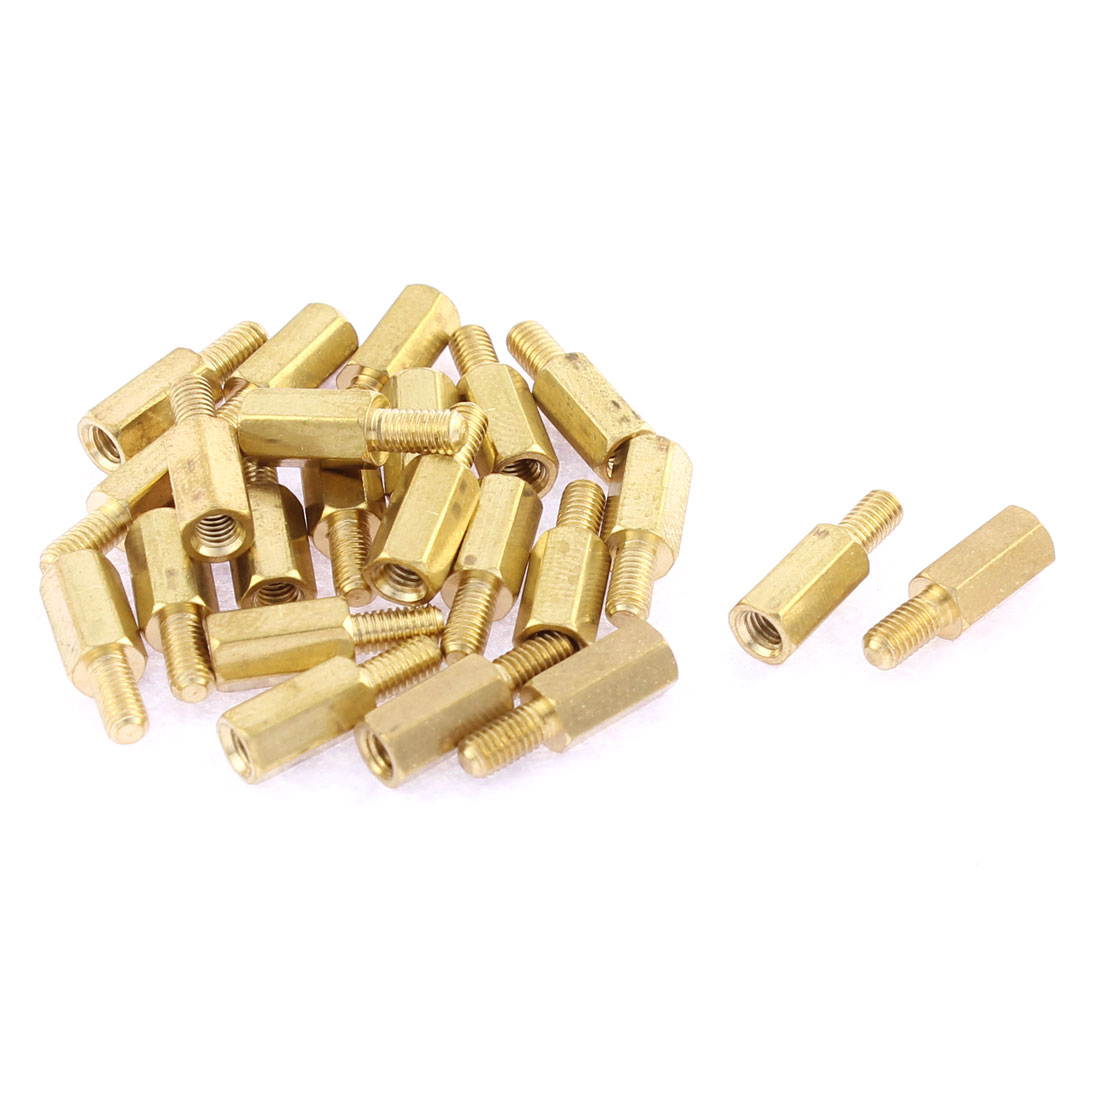 M3 Female to M3 Male Threaded Hex Standoff Spacer Coupler Nut 15mm Long 23Pcs